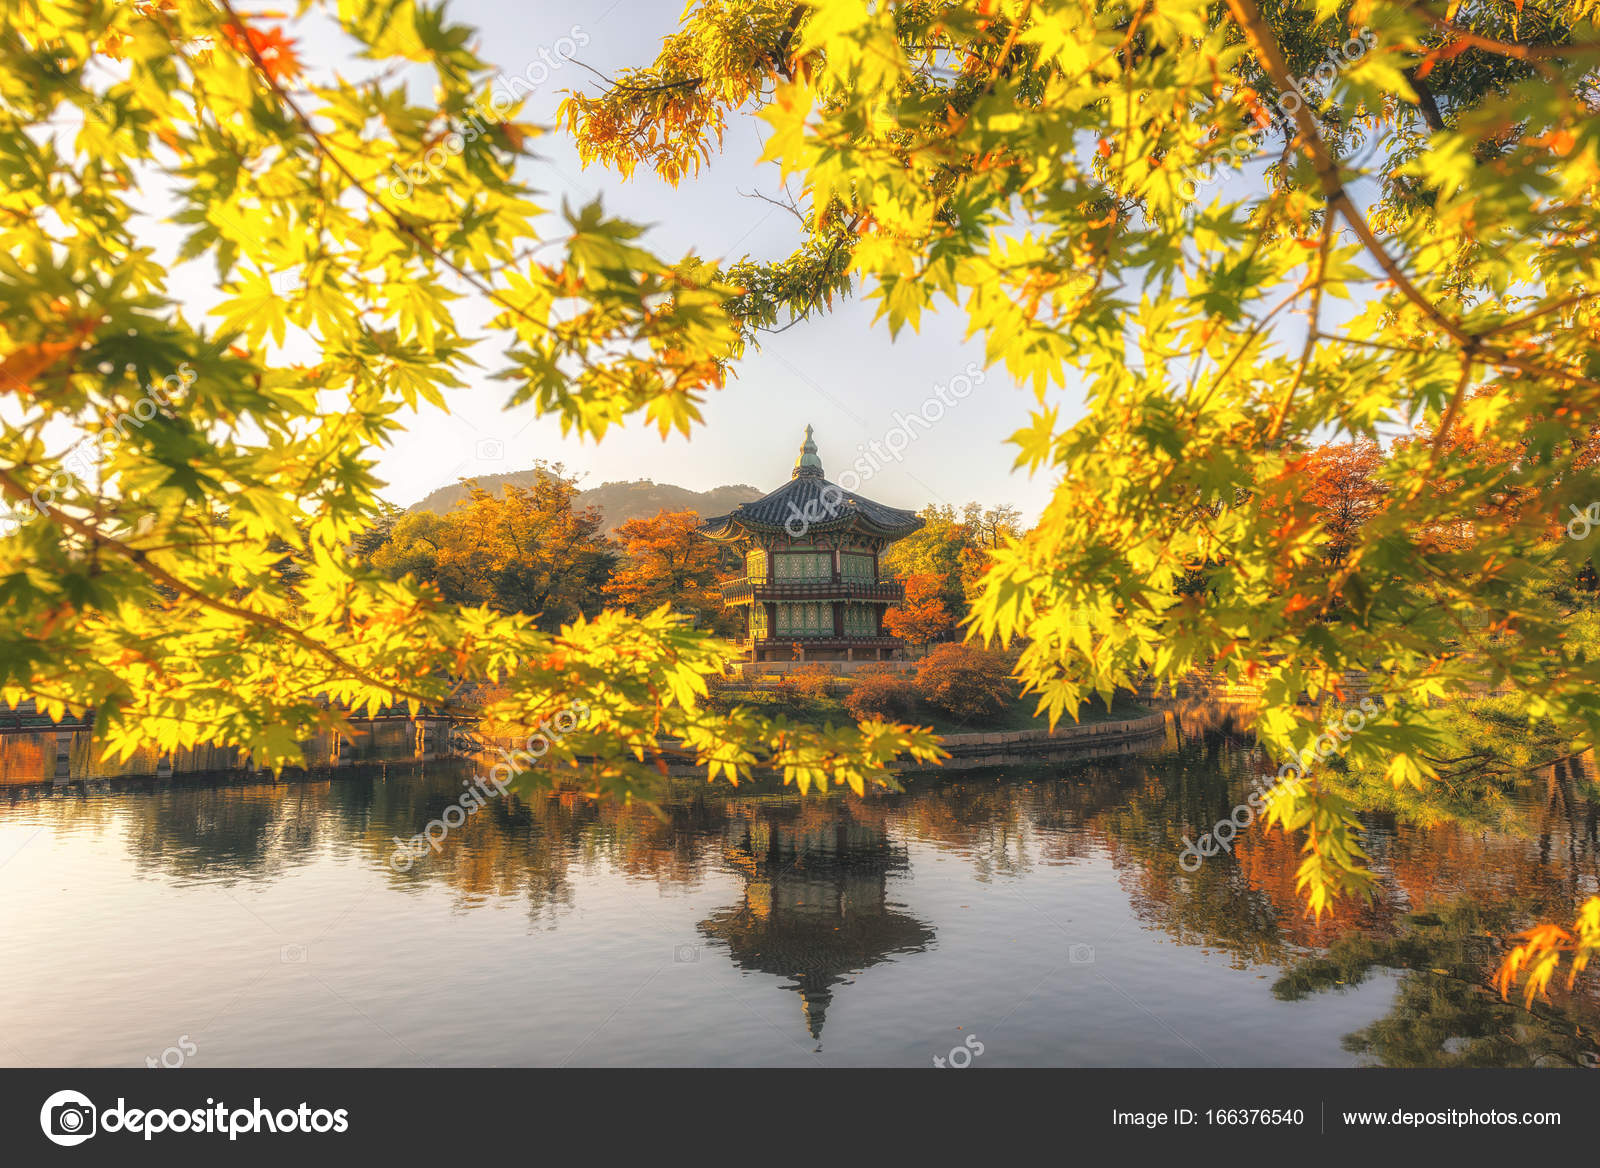 89b9198b57060 Gyeongbokgung Palace With maple leaves in the fall colors, Seoul, South  Korea — Stock